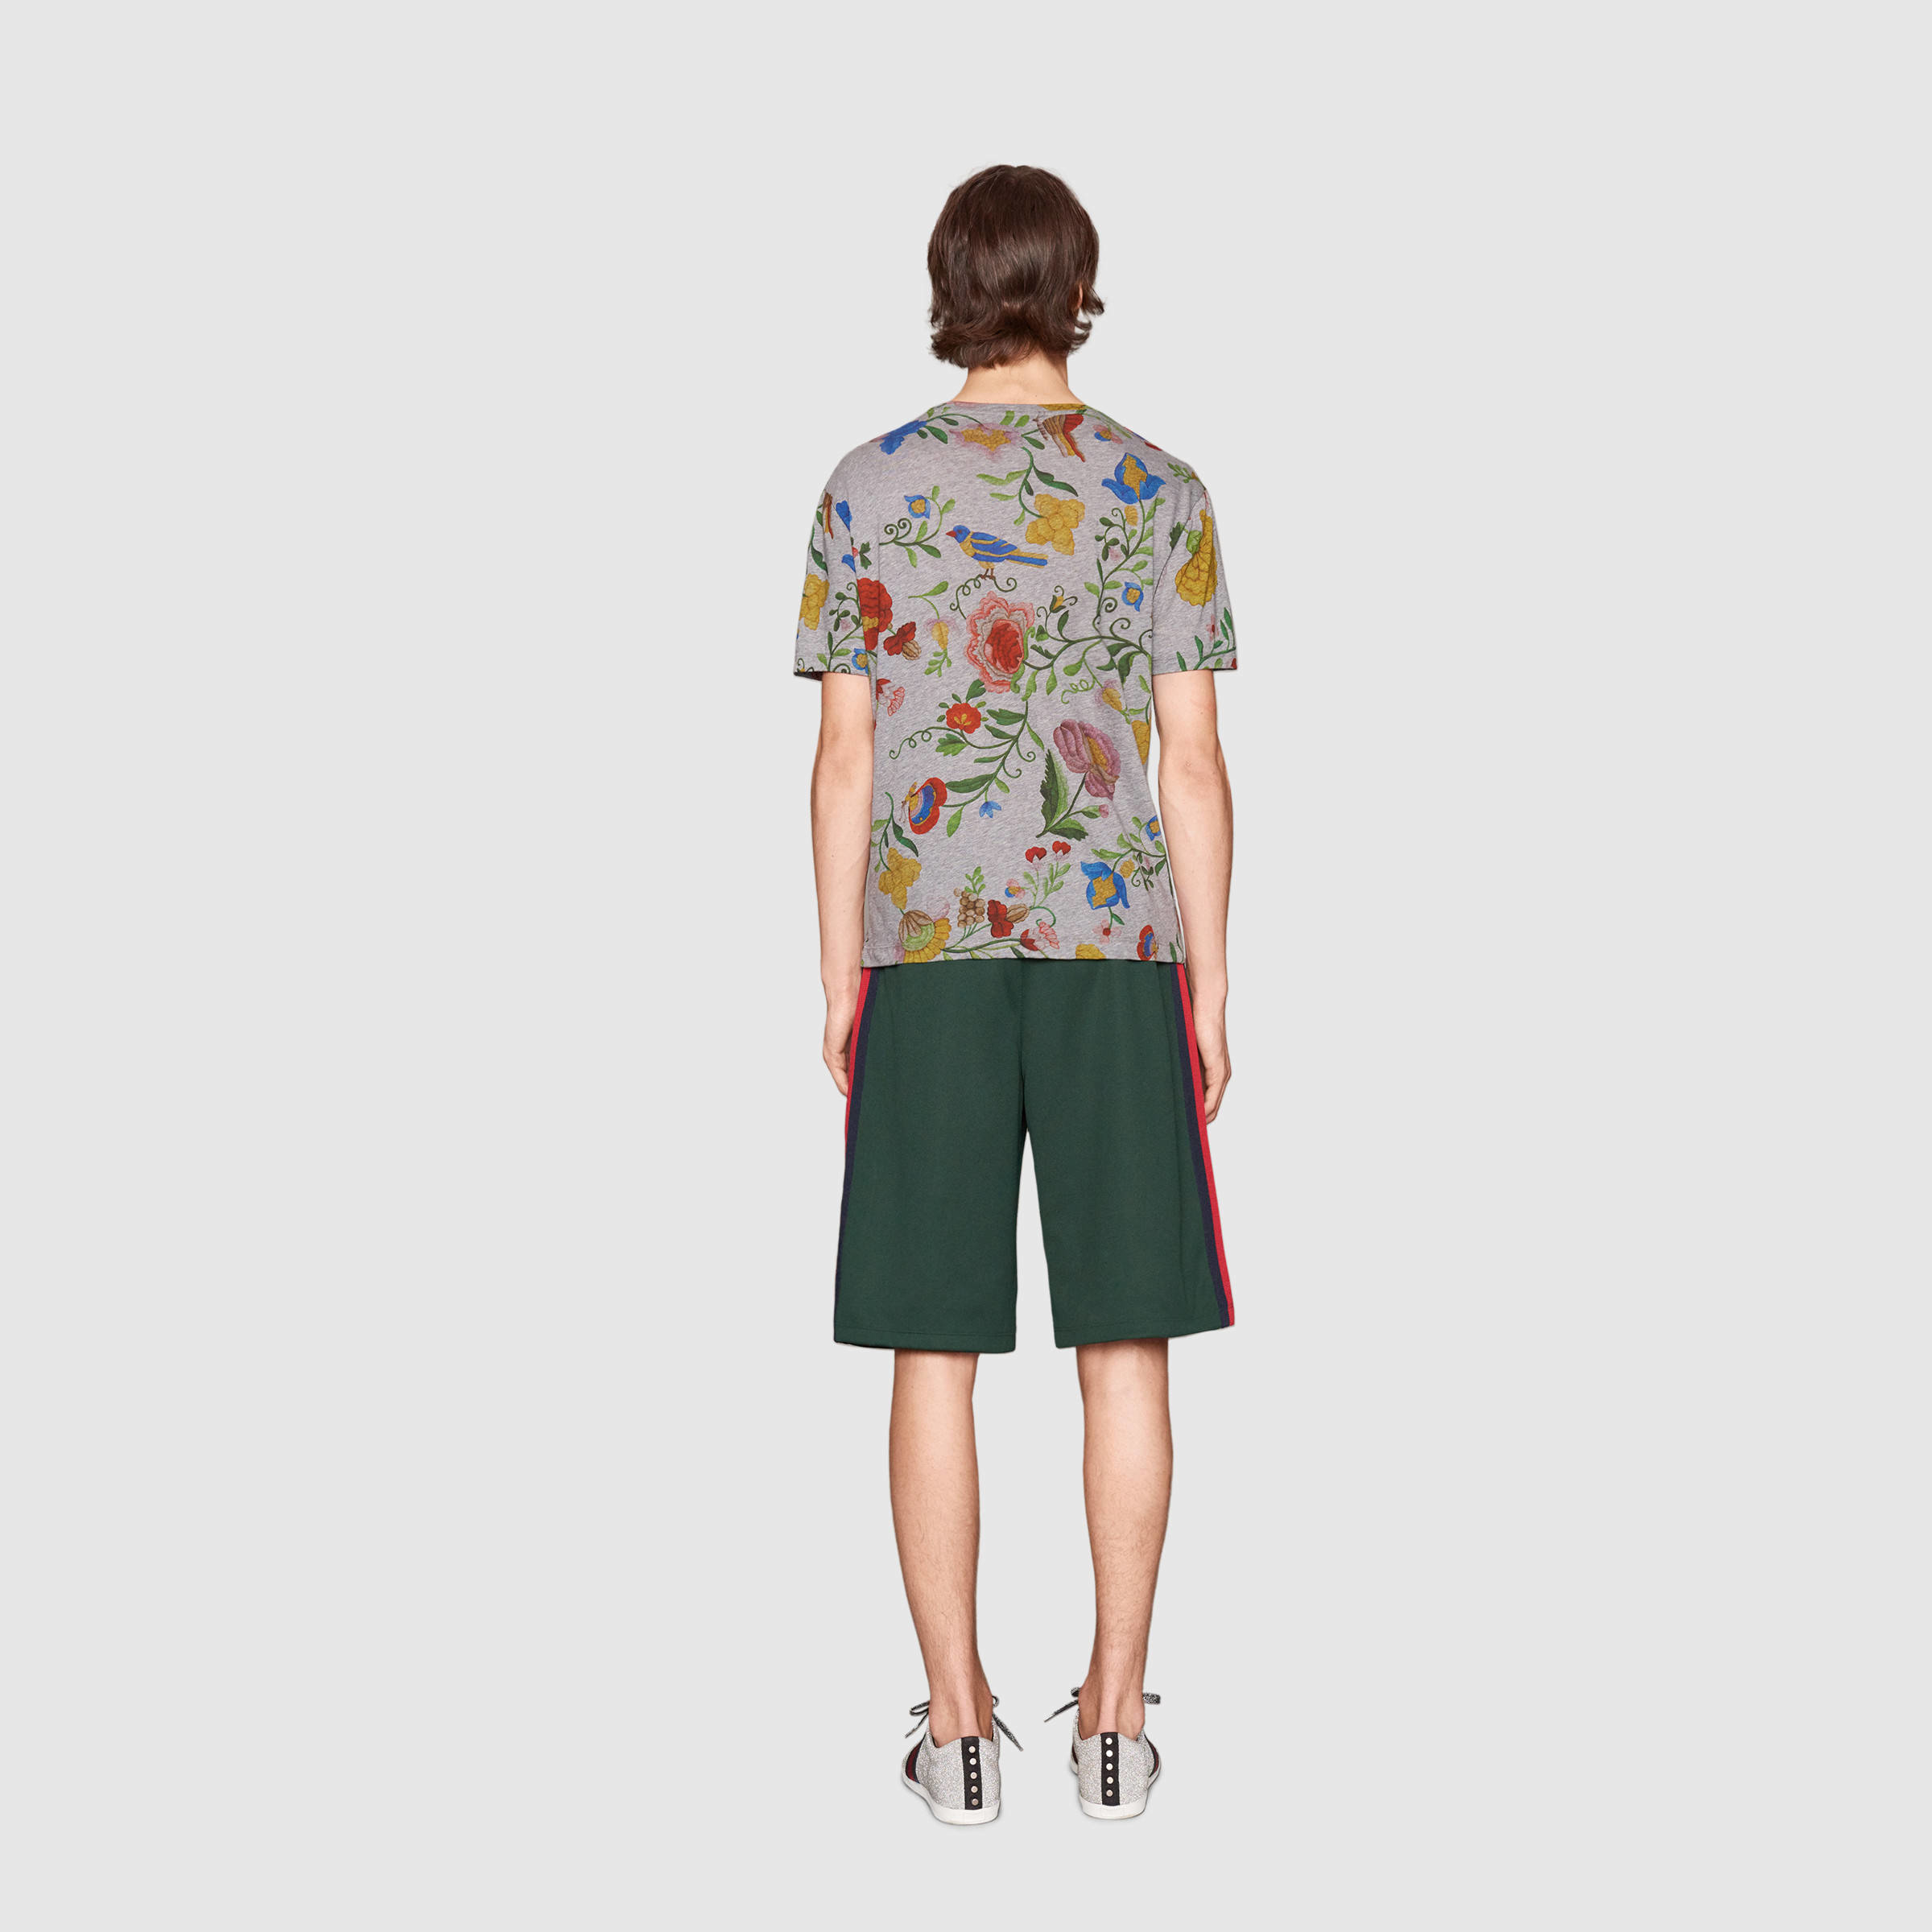 db26ec863d650 Gucci Floral Print Cotton T-shirt in Gray for Men - Lyst